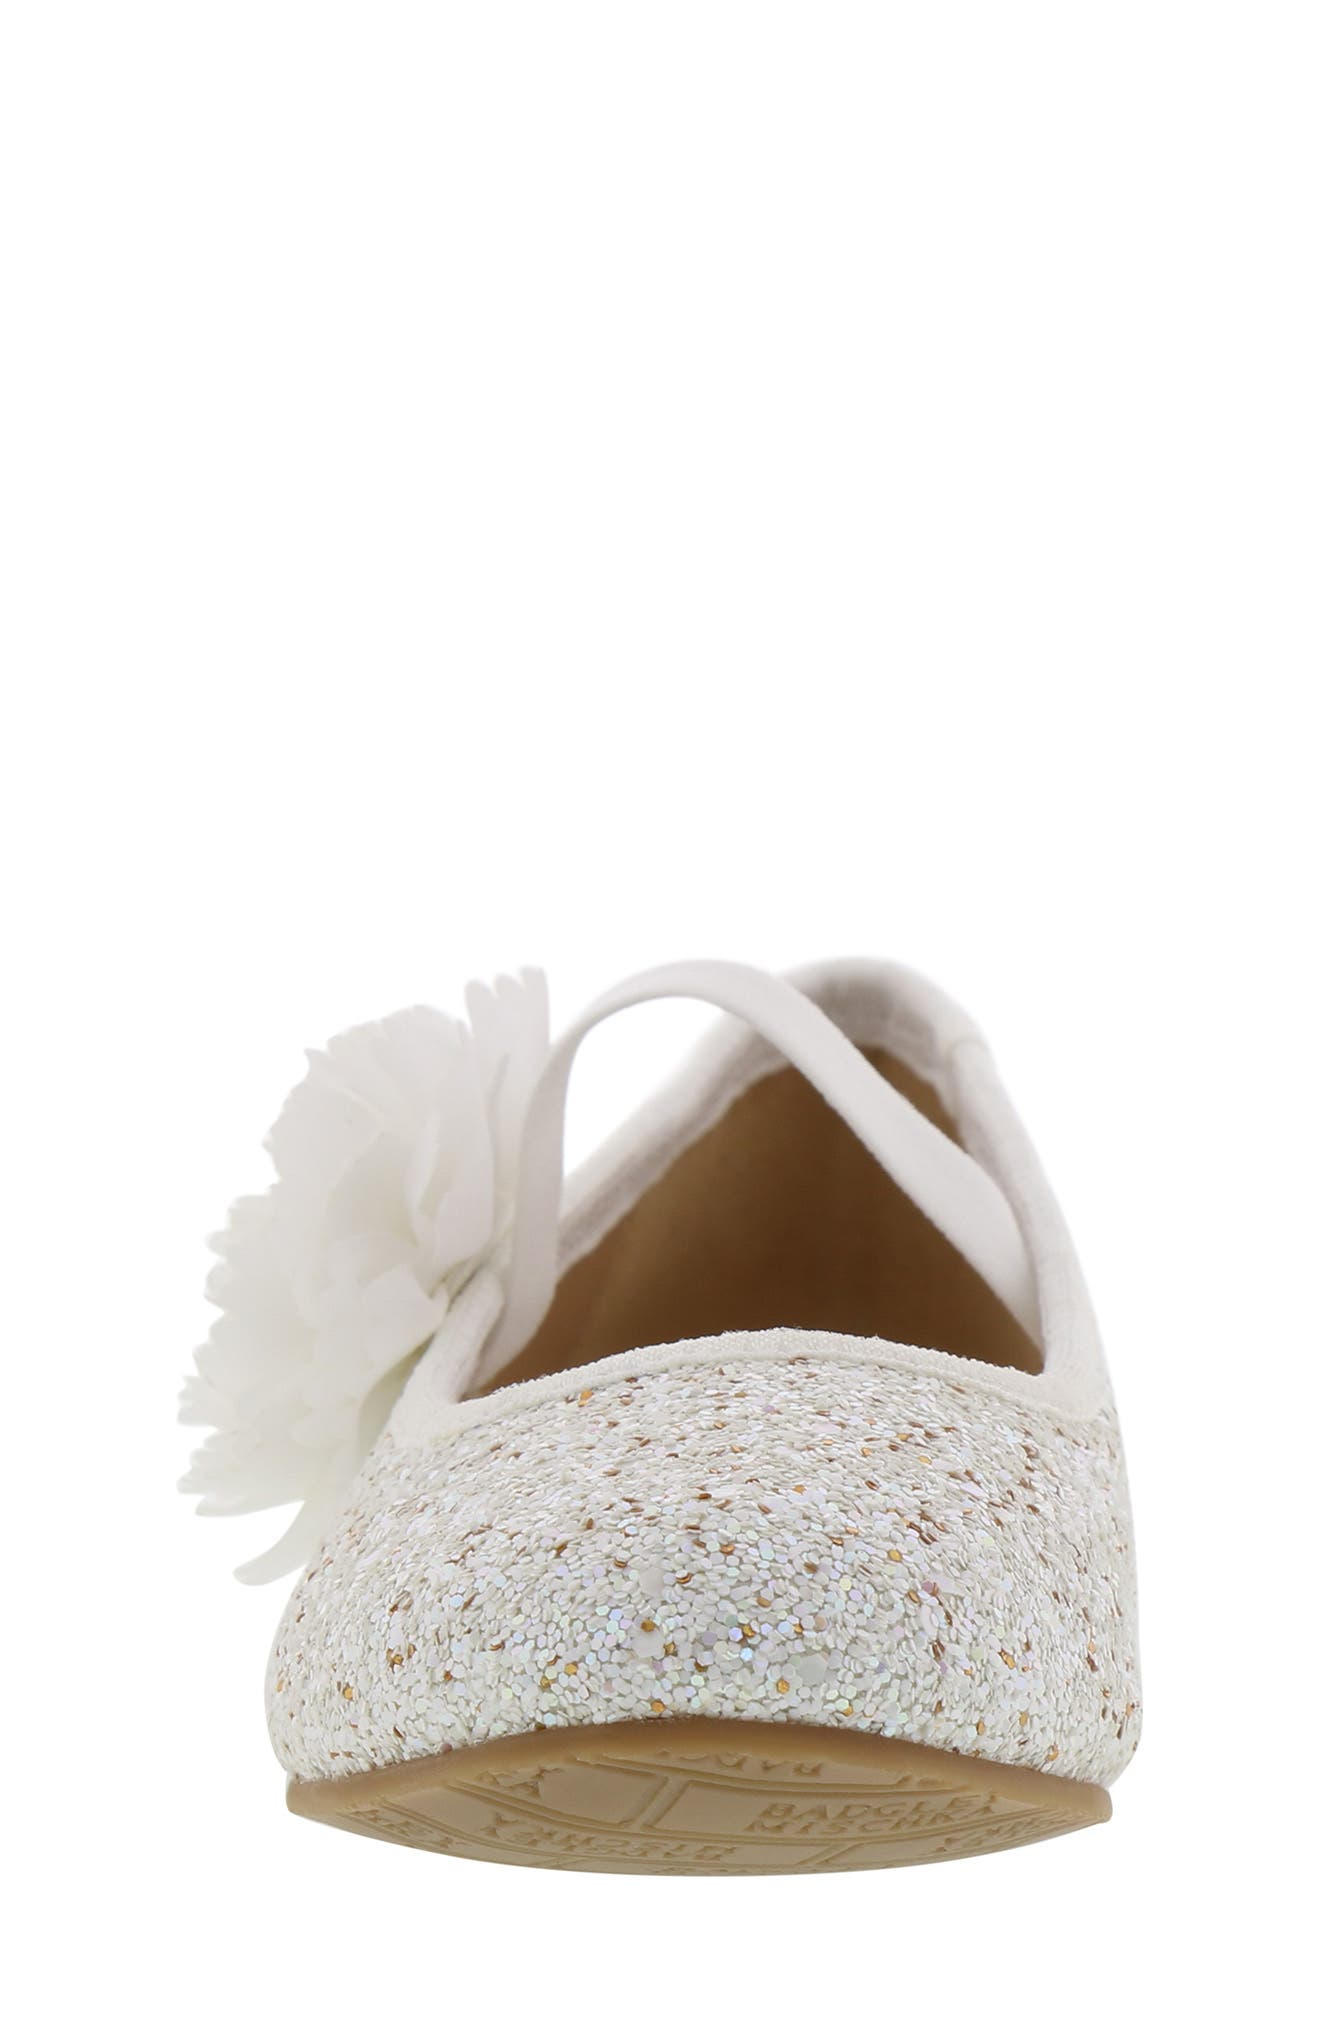 Badgley Mischka Amber Flower Glitter Mary Jane Flat,                             Alternate thumbnail 4, color,                             WHITE GLITTER